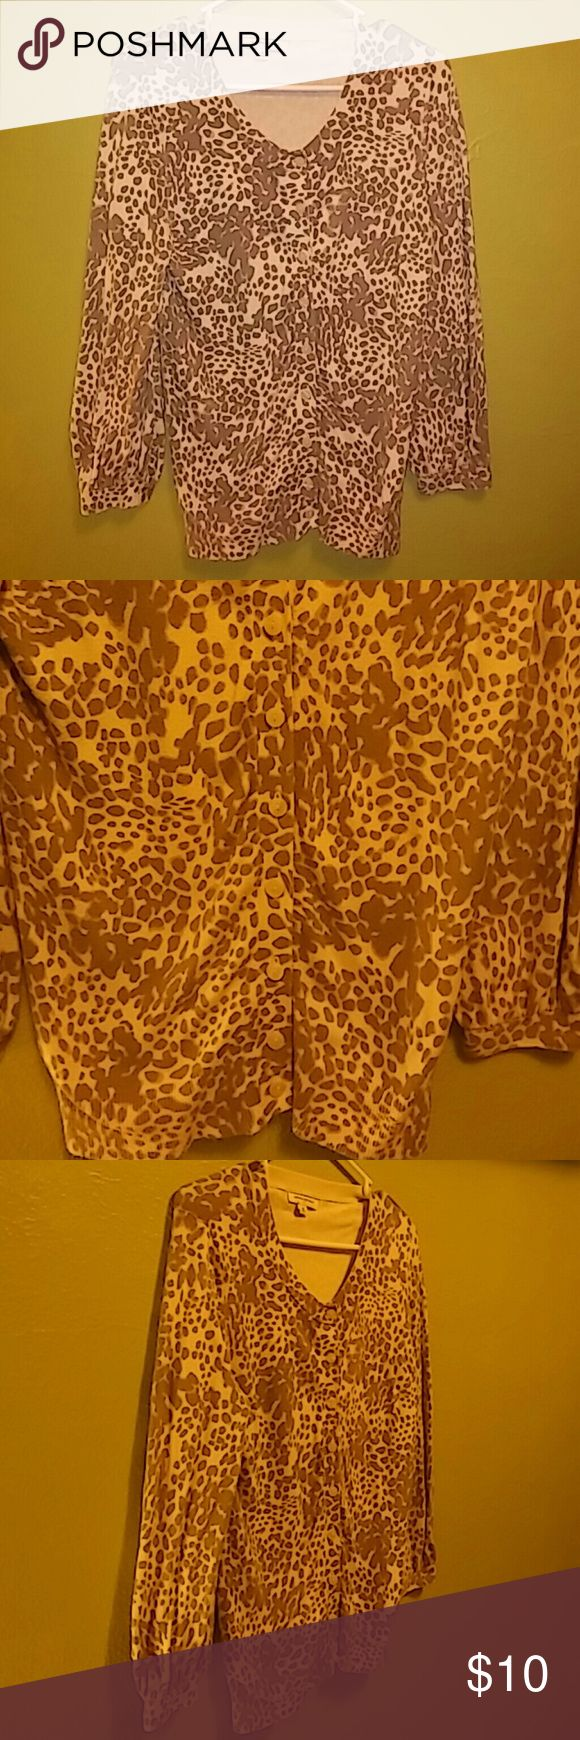 Banana Republic Leopard Size M In good condition Banana Republic Sweaters